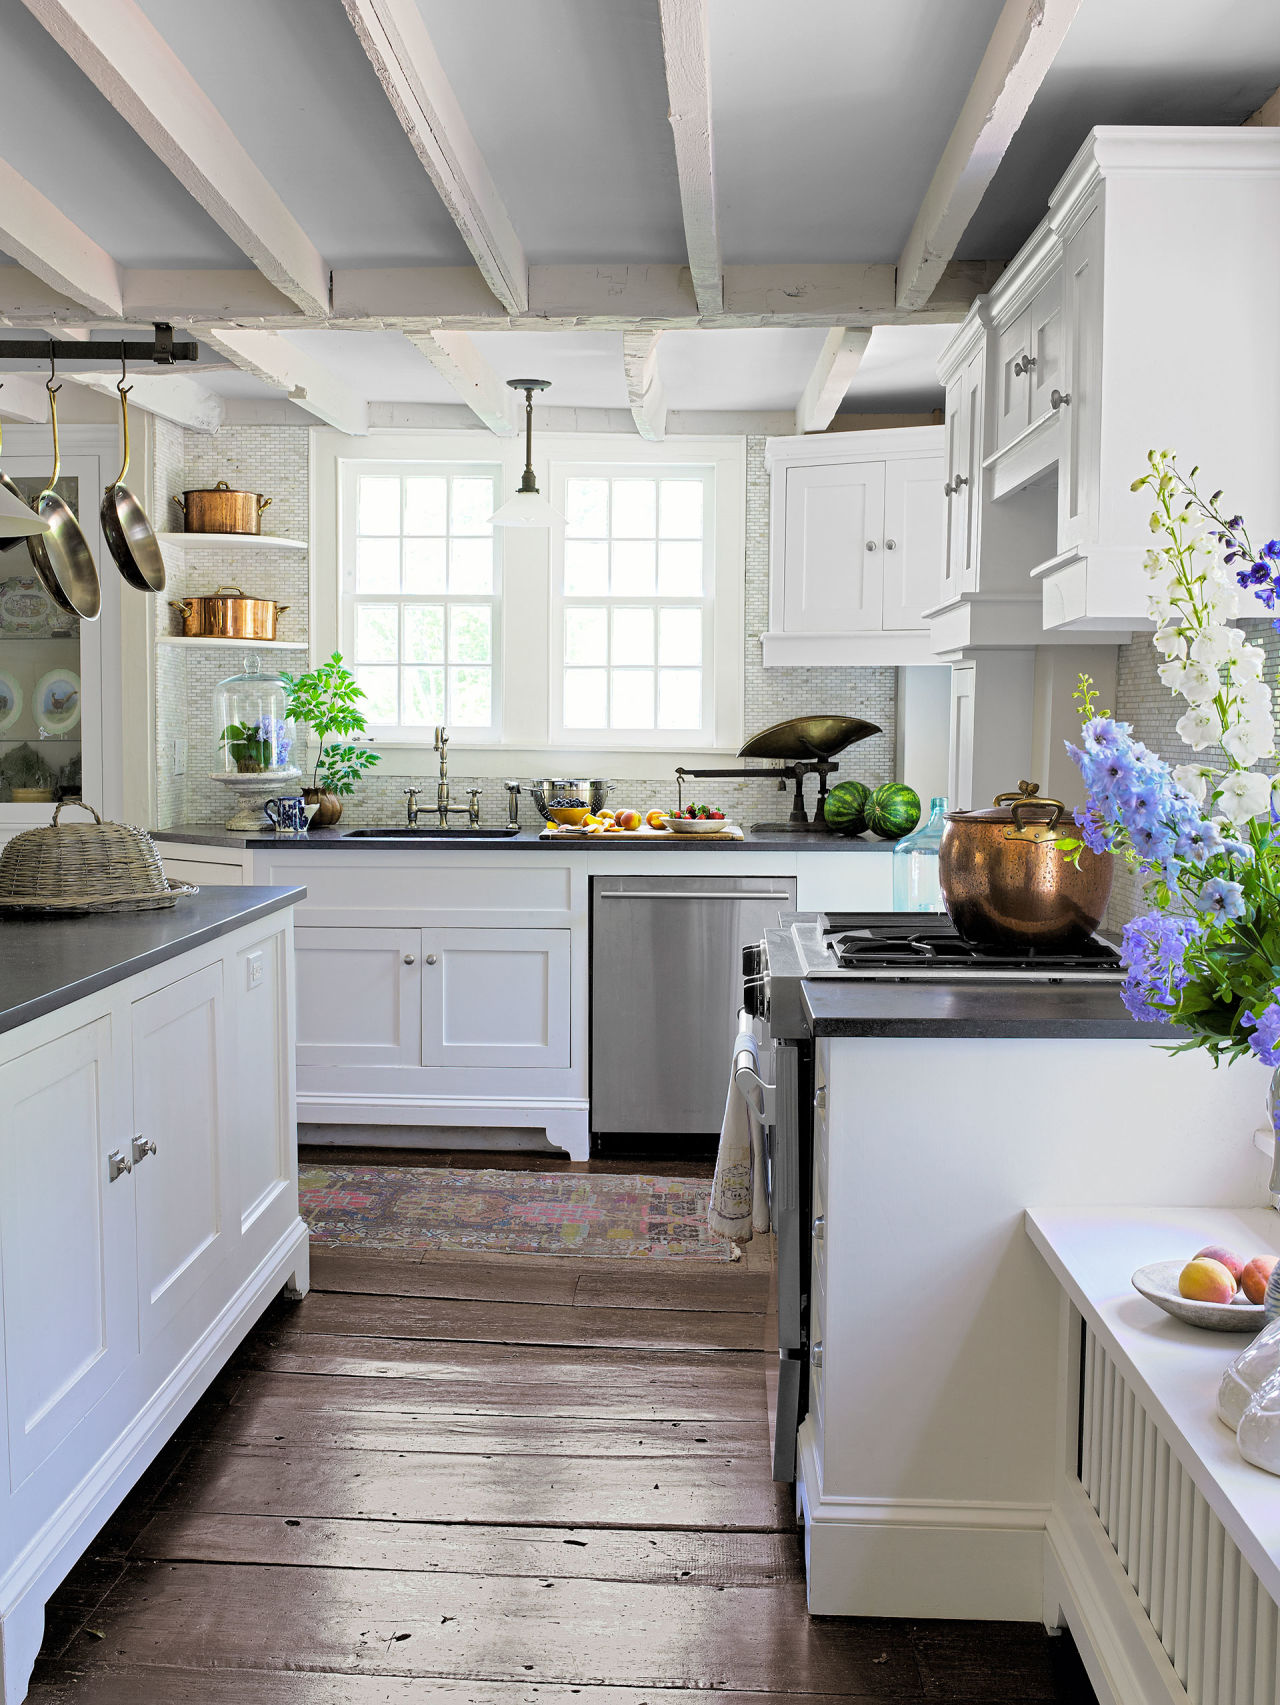 Ellen allen connecticut farmhouse farmhouse decorating ideas for Country living kitchen designs